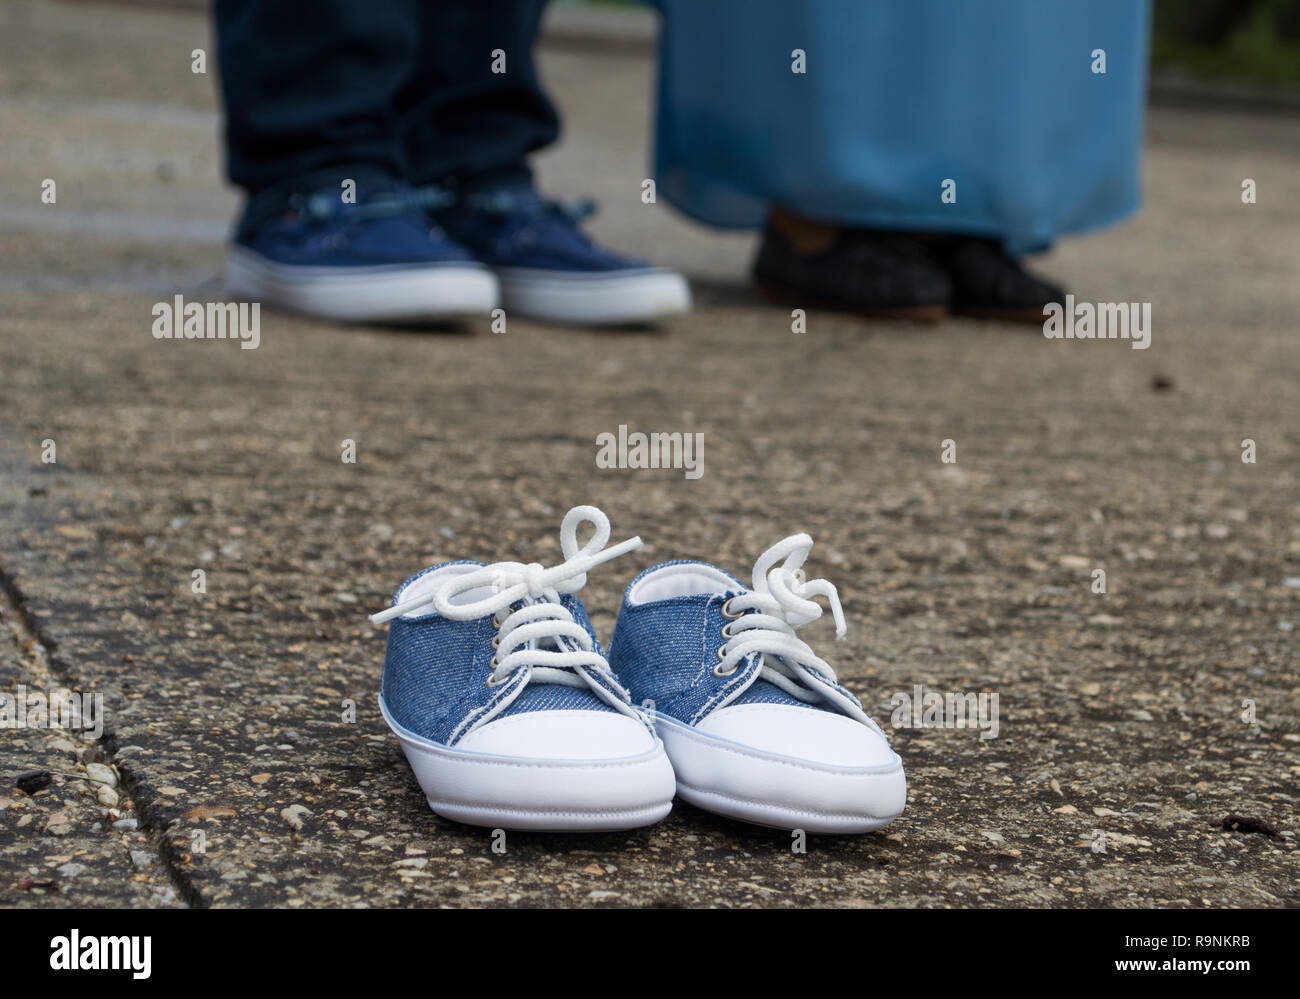 Pregnancy Announcement With Baby Shoes - Stock Image